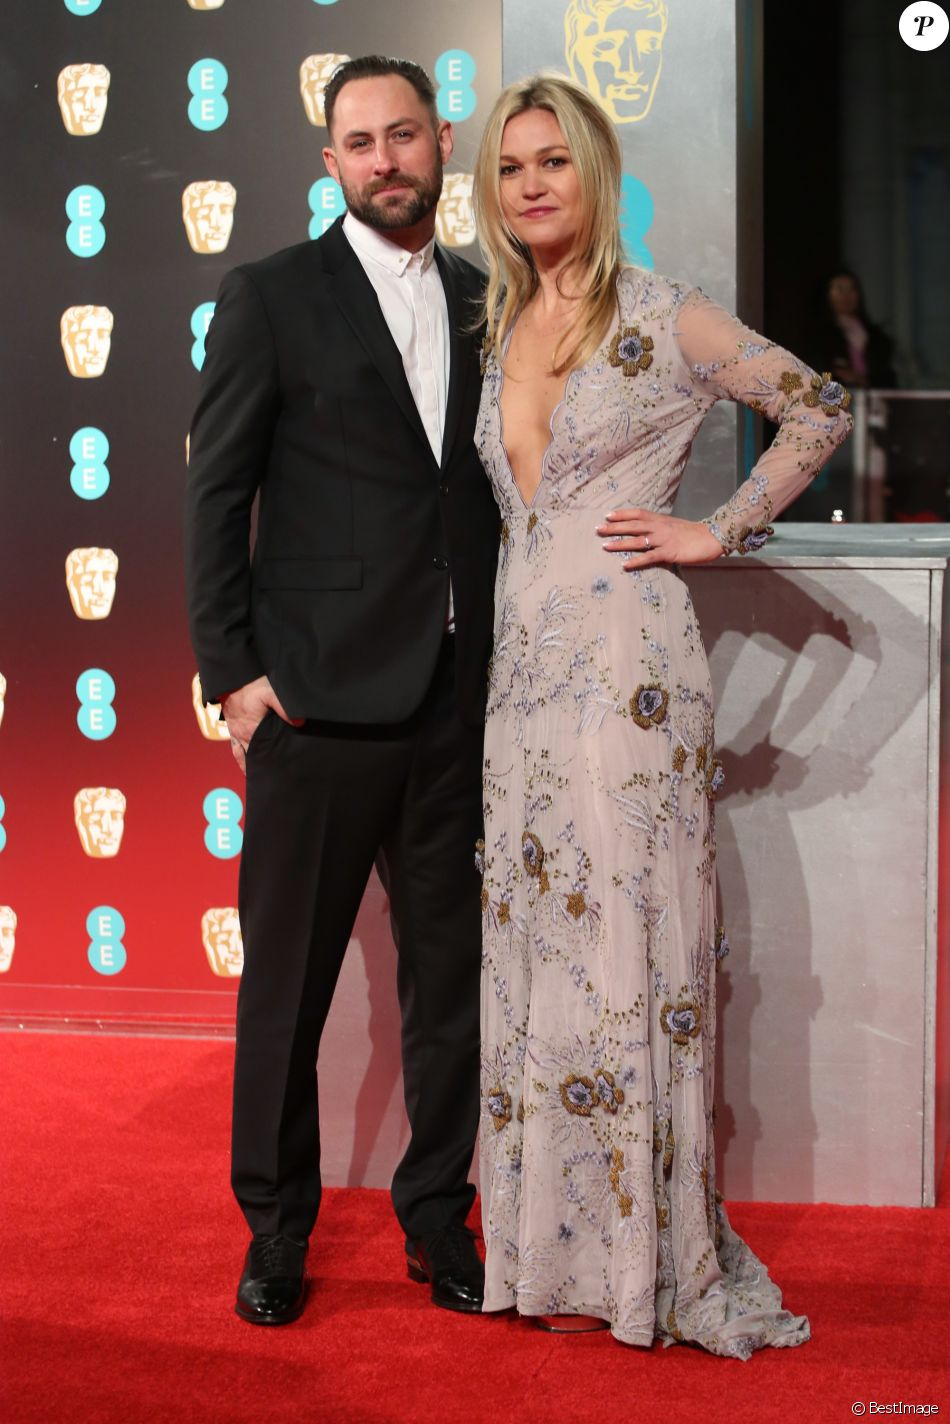 Preston J.Cook et sa fiancée Julia Stiles - Arrivées aux BAFTA 2017 (British Academy Film Awards) au Royal Albert Hall à Londres, le 12 février 2017.